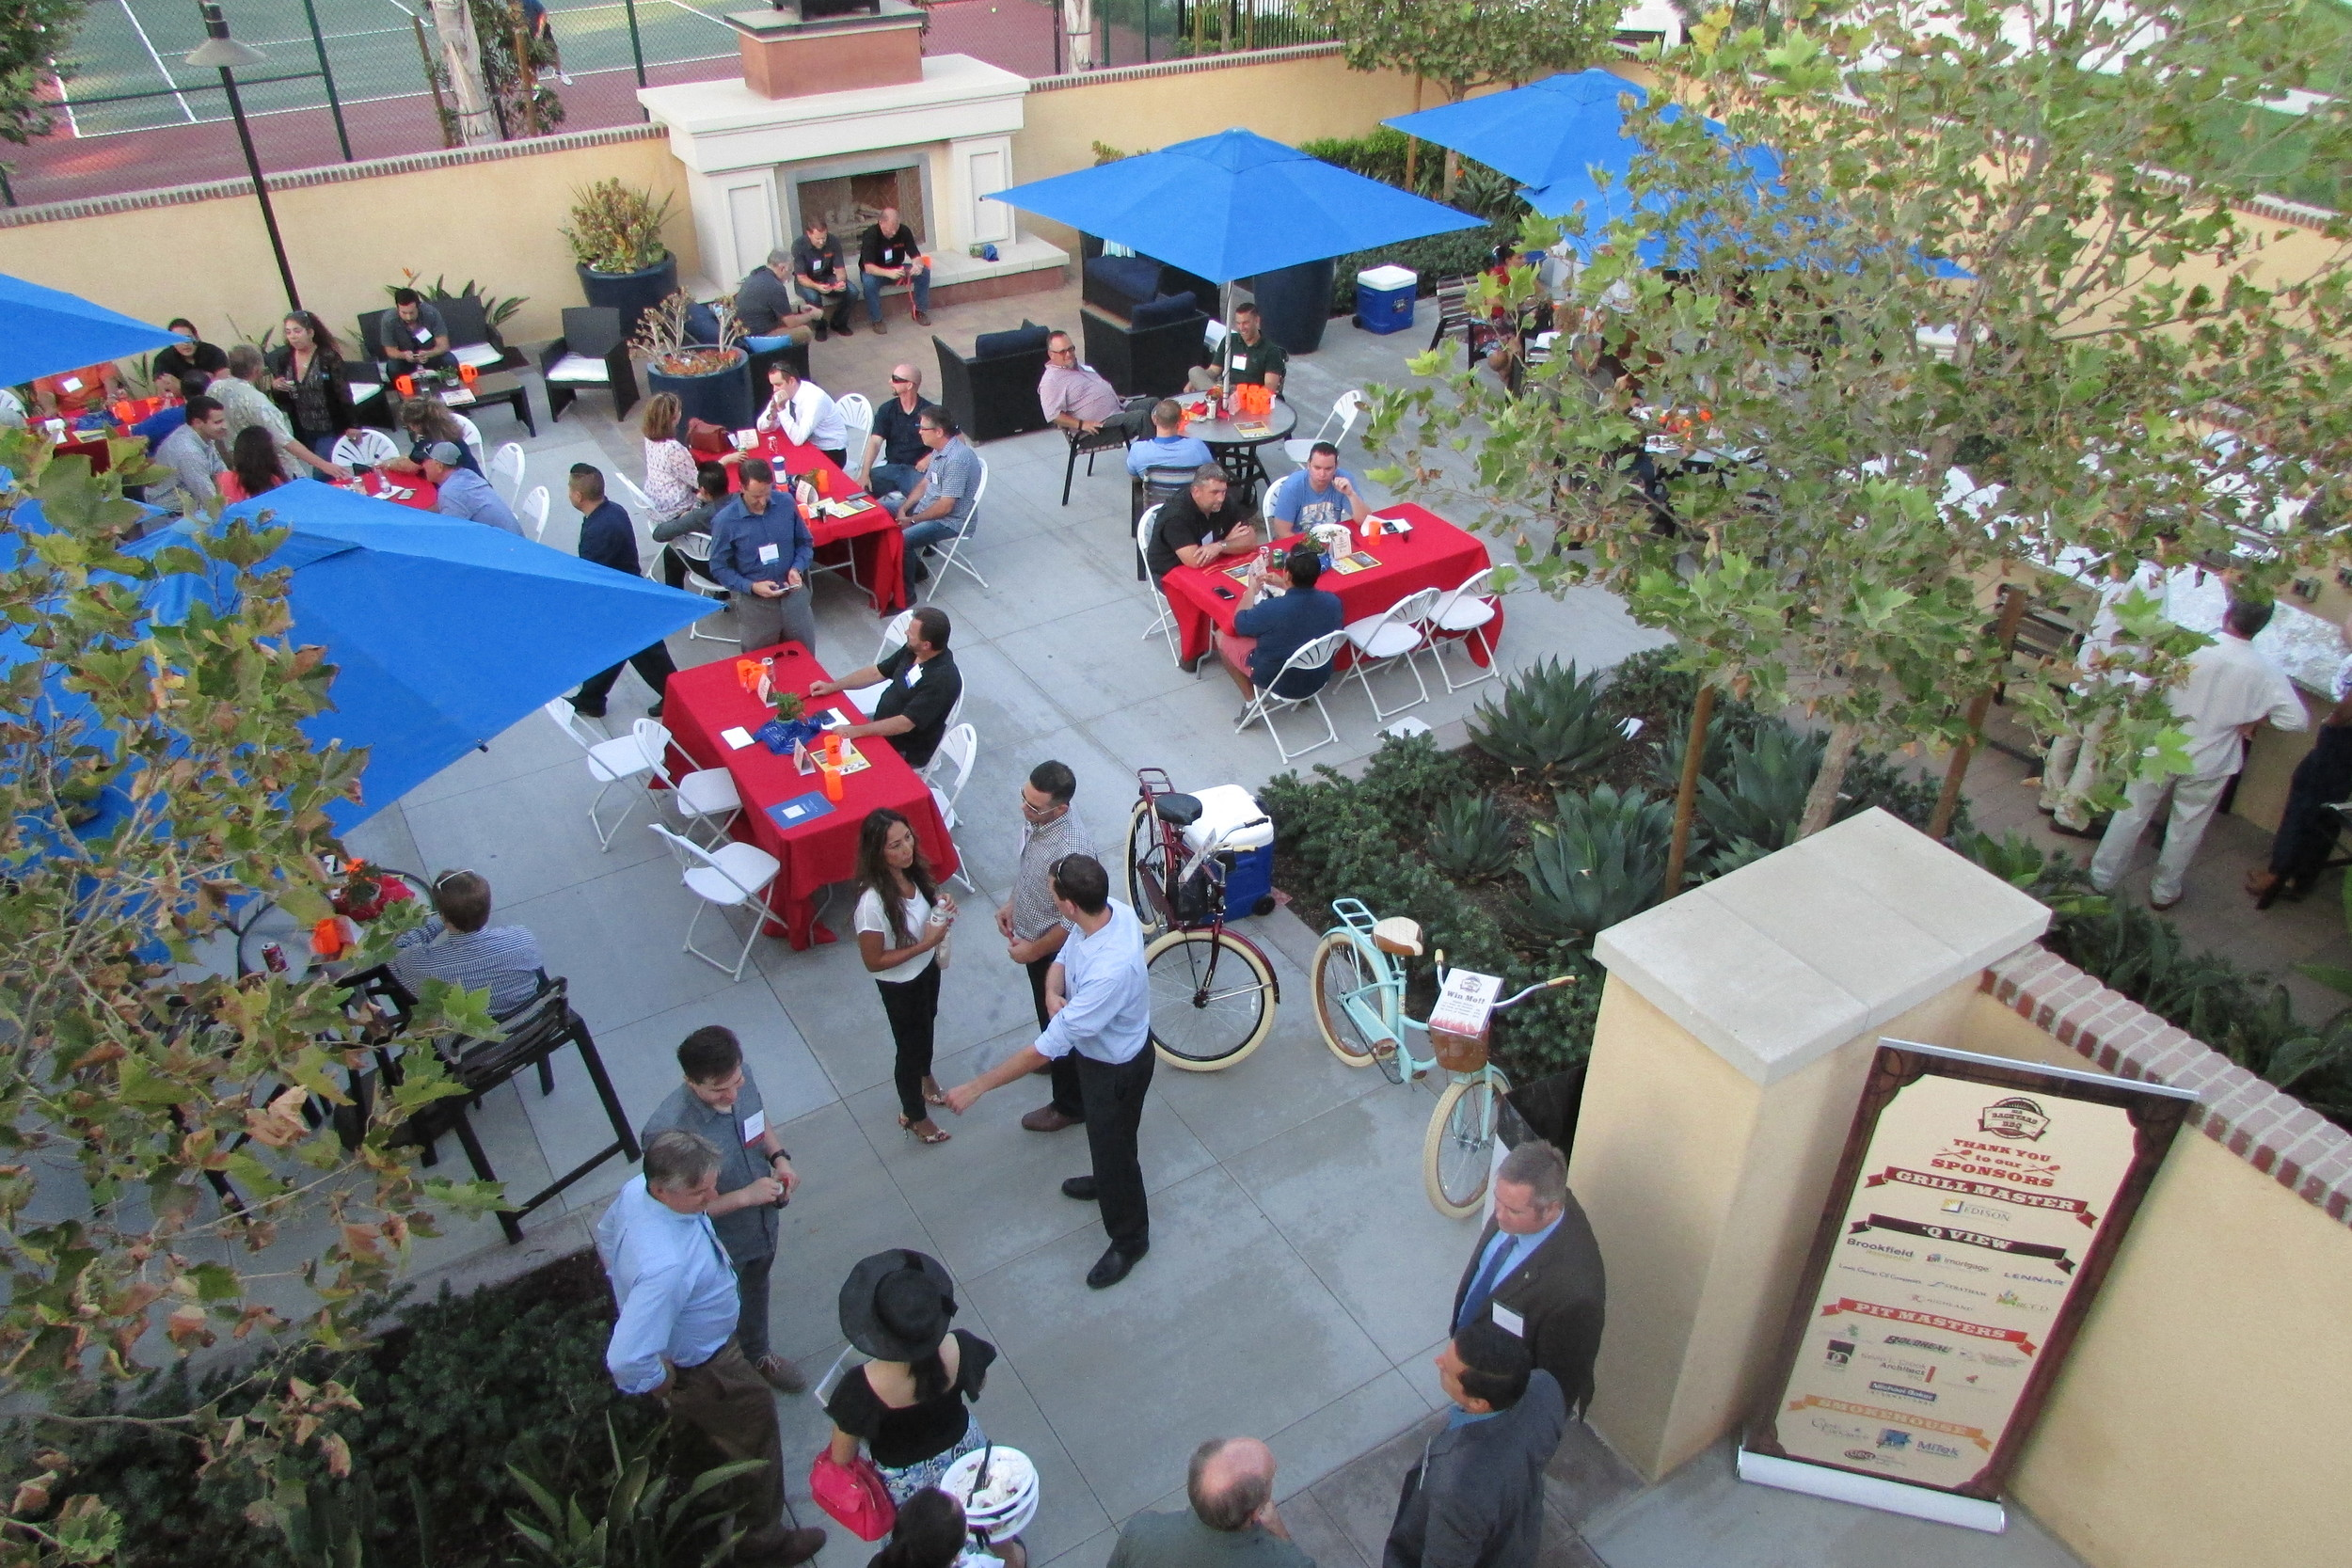 Almost 200 attendees networking while enjoying delicious BBQ at the 2016 Backyard BBQ